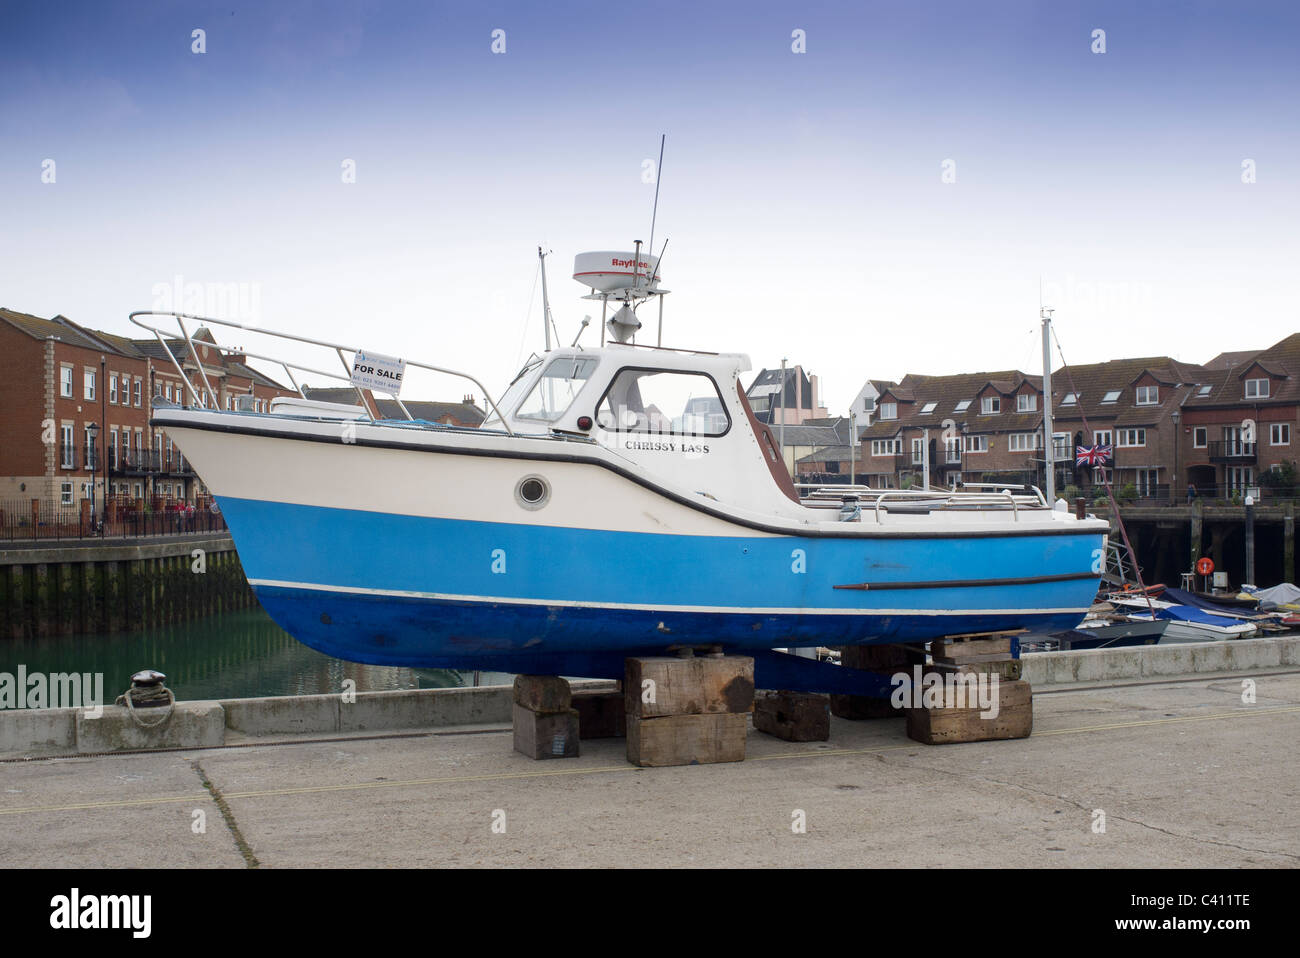 Fishing Boats For Sale >> Blue Fishing Boat For Sale Stock Photo 36902782 Alamy